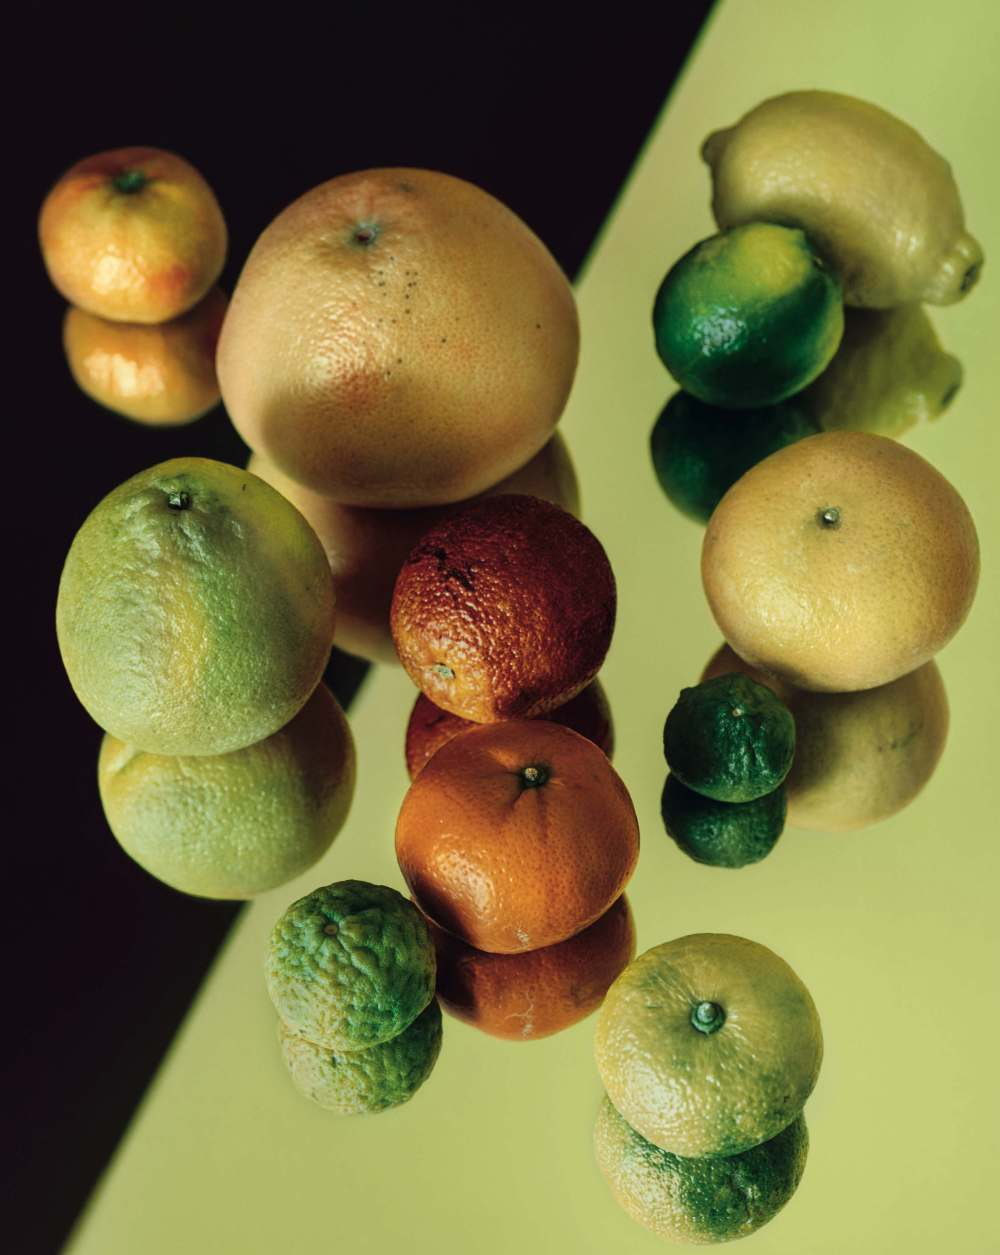 2017 August VOGUE Germany Citrus fruits_ Zitrusfrüchte copy